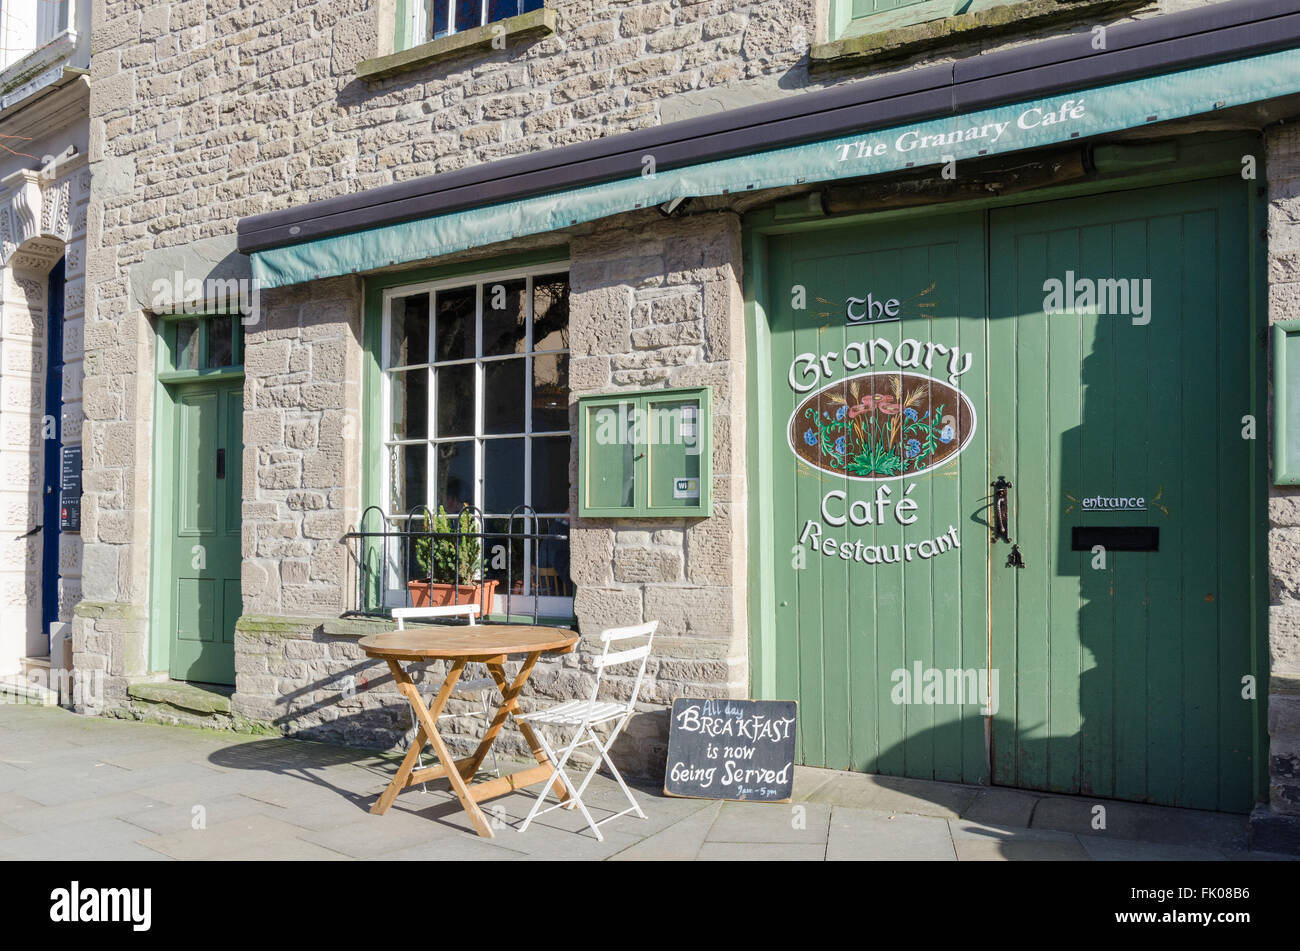 The Granary Cafe restaurant in Hay-on-Wye - Stock Image